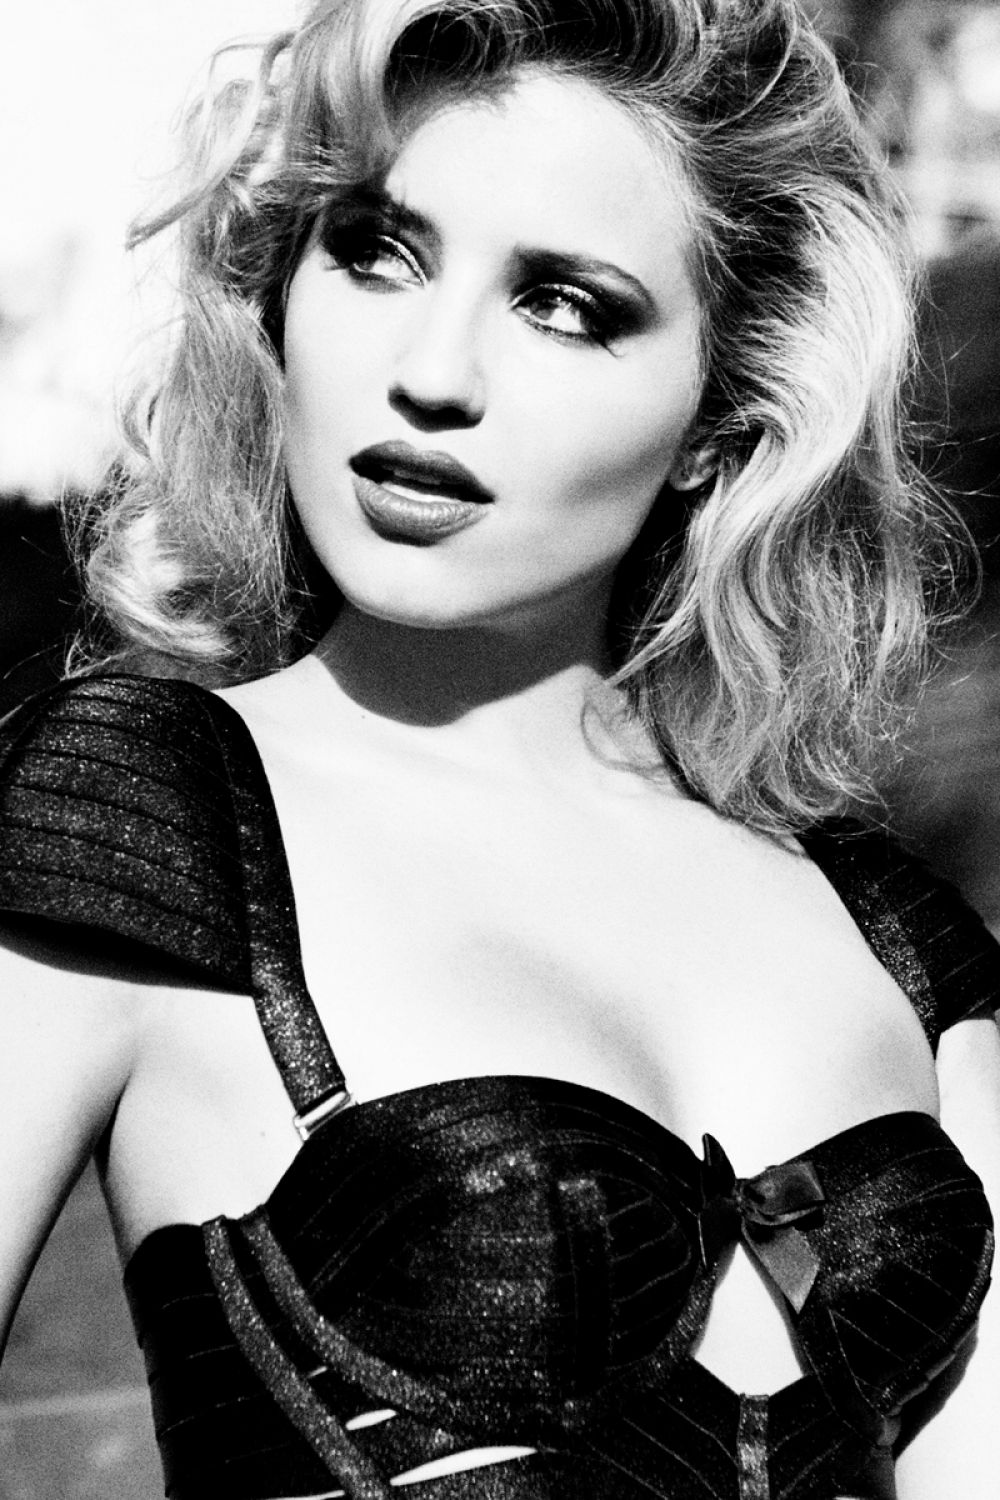 Dianna Agron At Ellen Von Unwerth Photoshoot - Celebzz ...